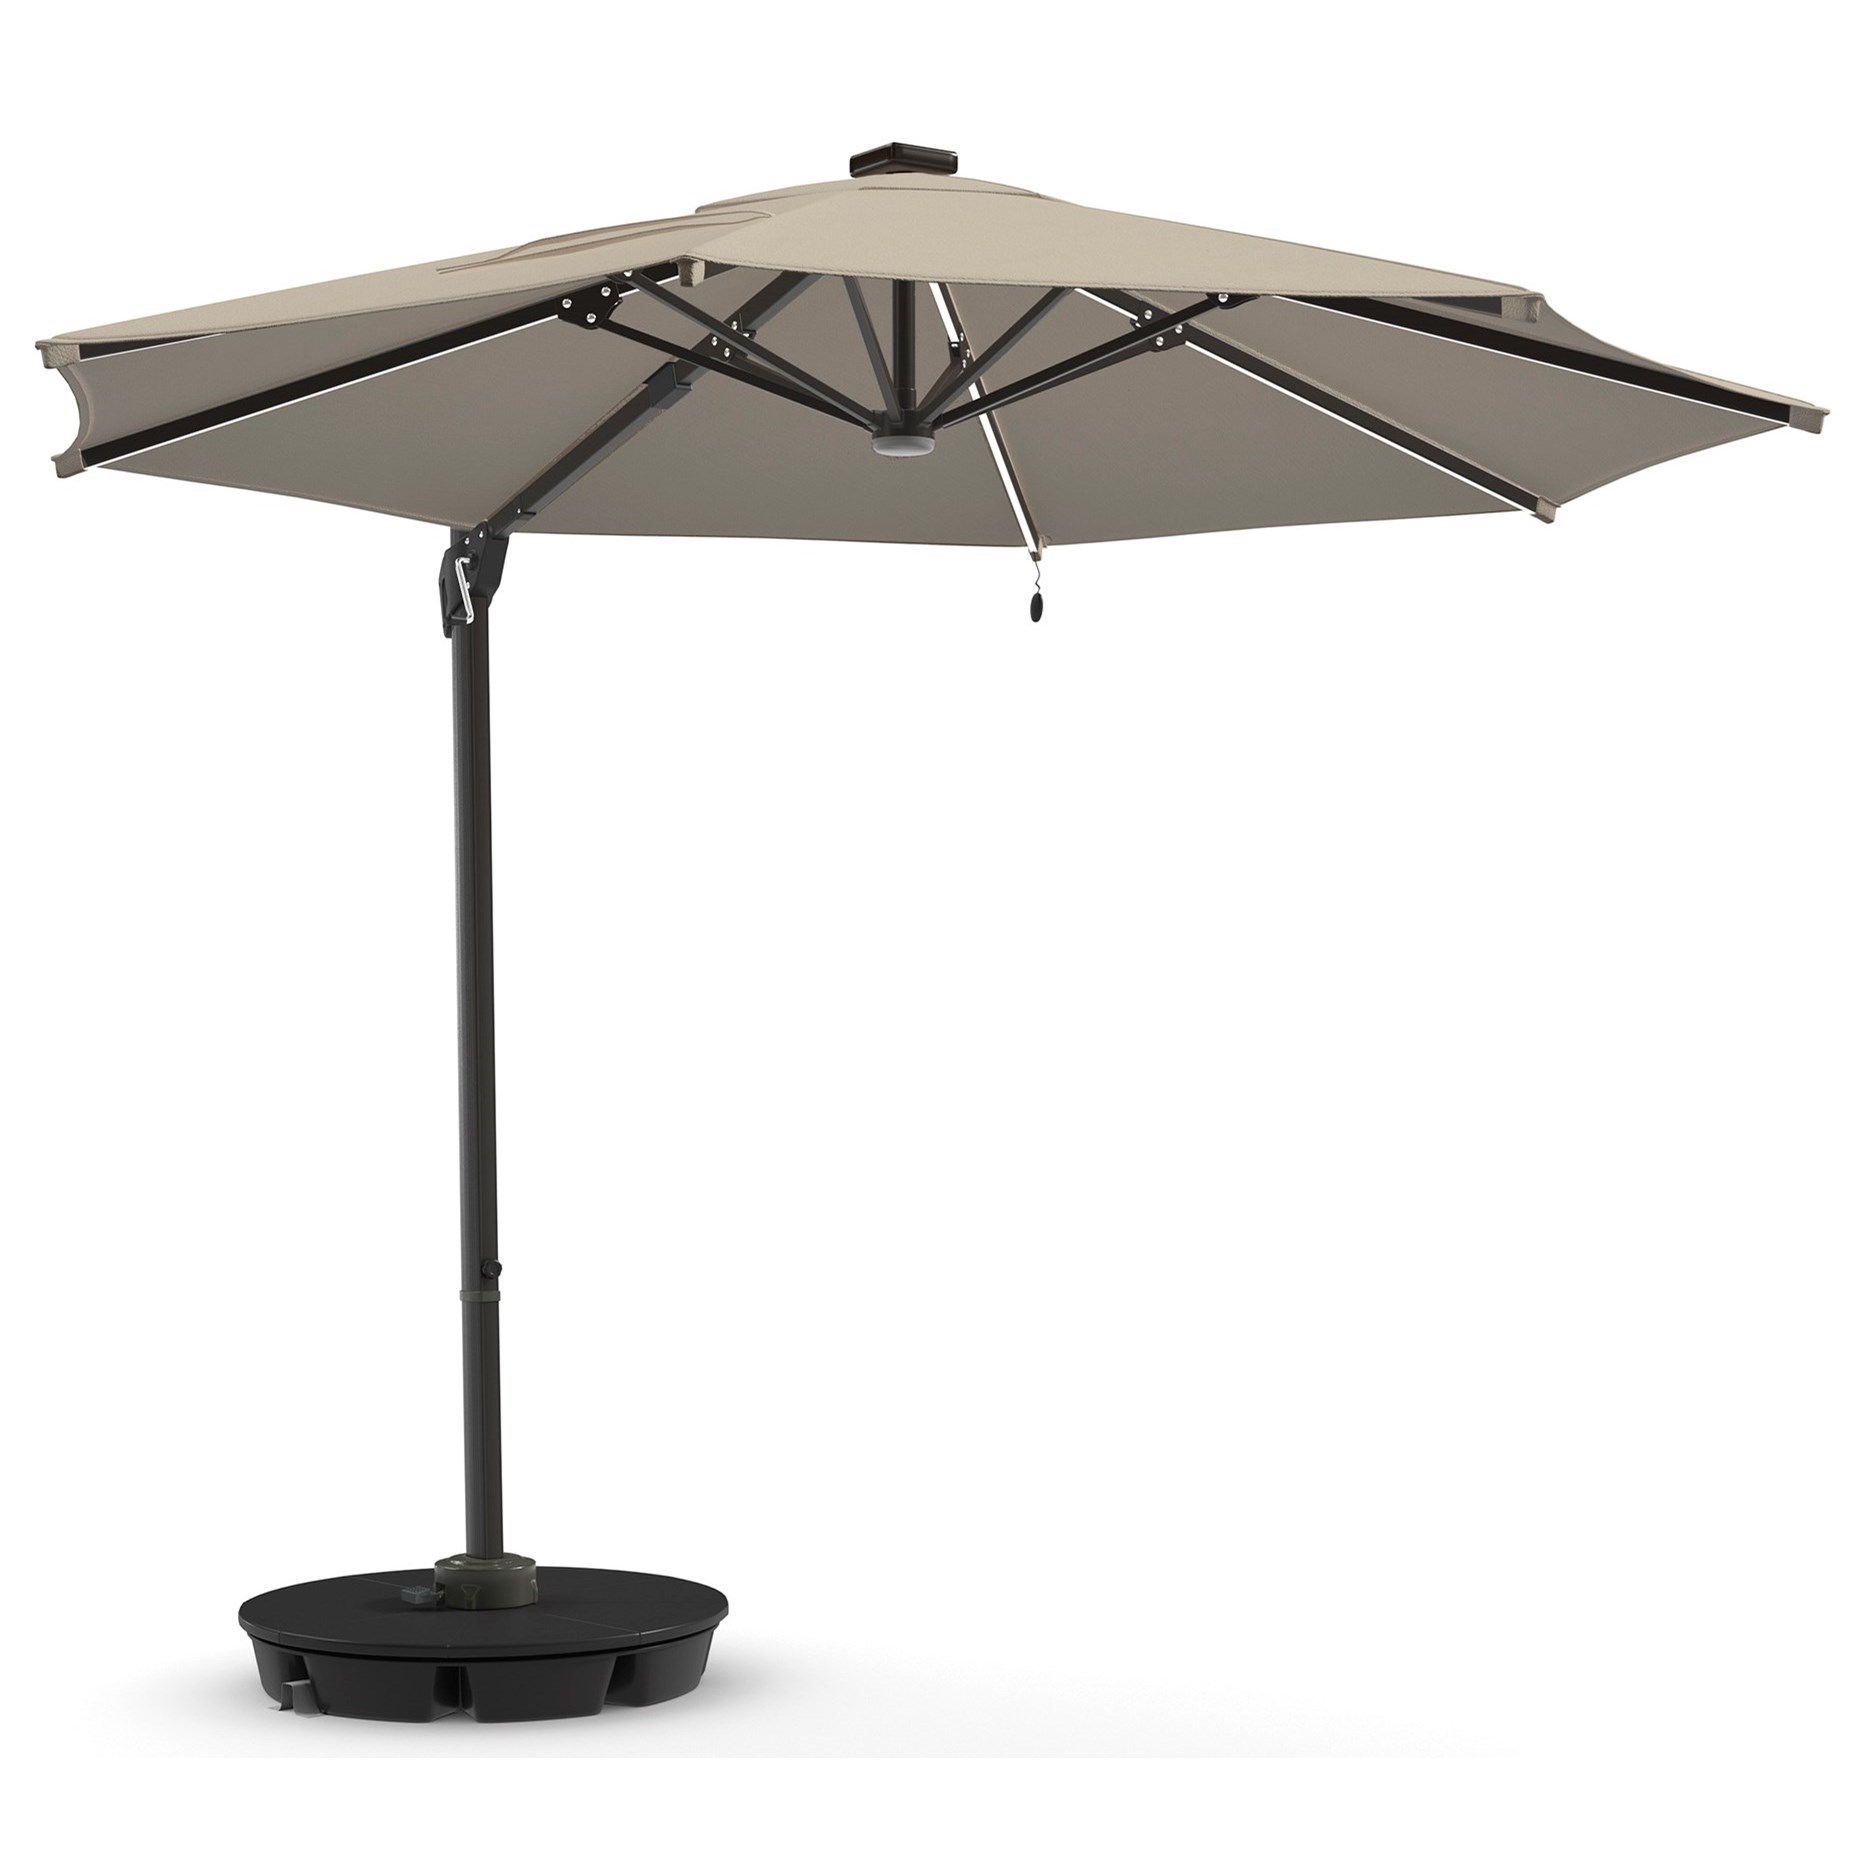 Signature Design by Ashley Oakengrove Large Cantilever Umbrella - Item Number: P017-995